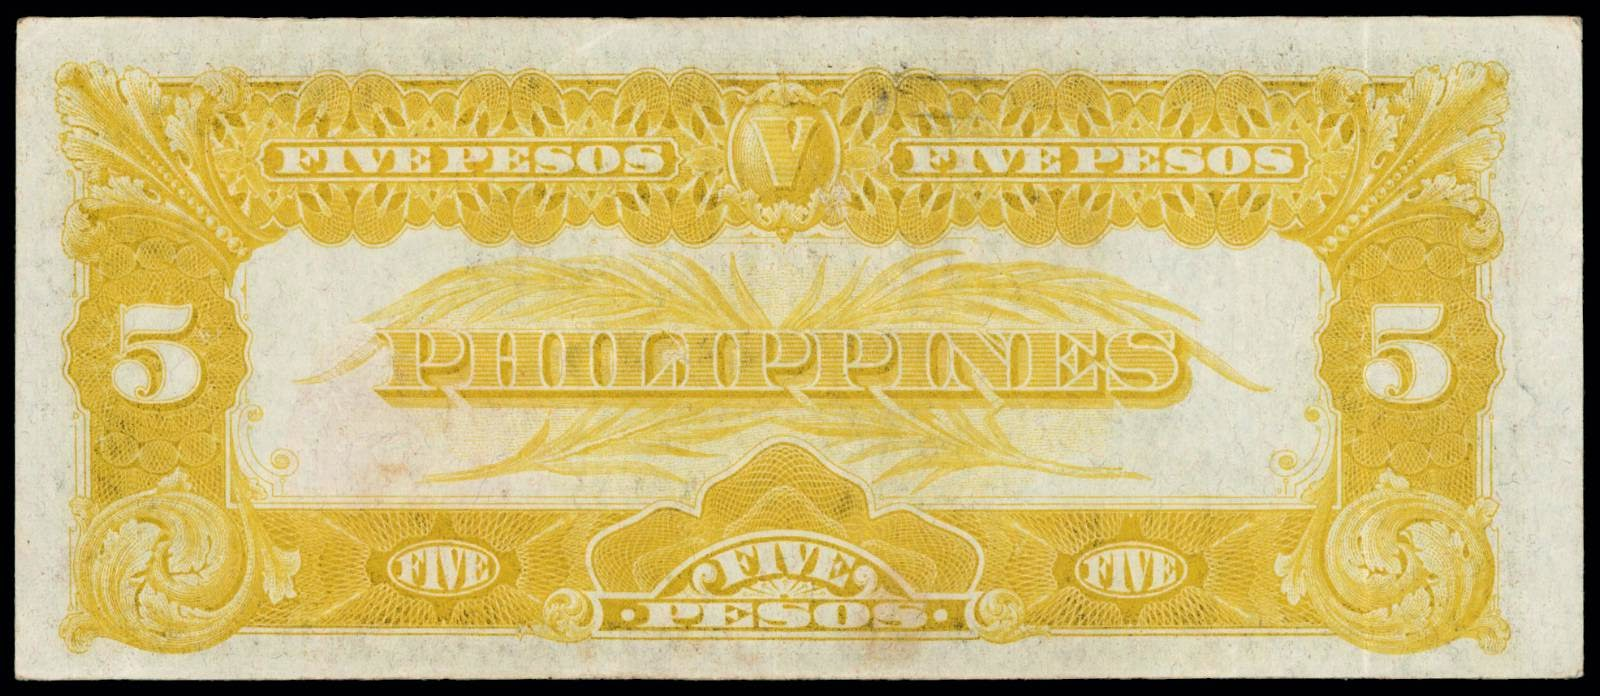 1936 Philippines Five Pesos Treasury Certificate